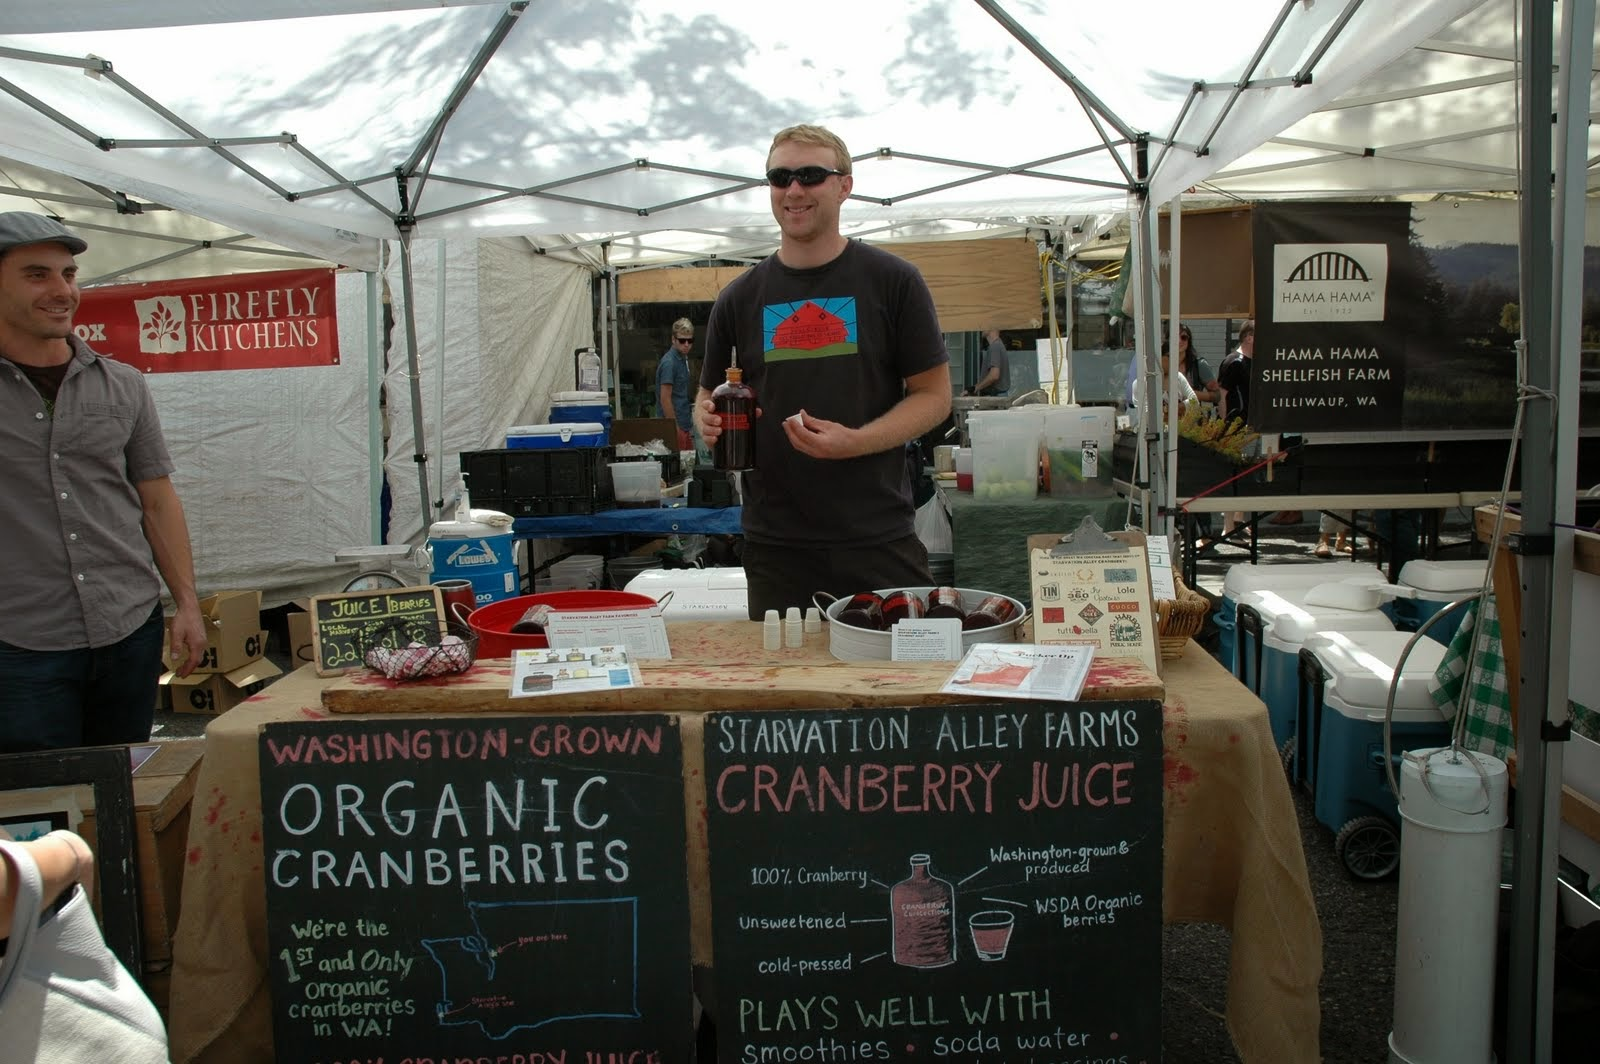 Washington has 1,700 acres of cranberry farms. Only 10 acres are organic, and they all belong to the same farm. The Ballard Farmer's Market is one of the few places where you can find these local, organic fruits.